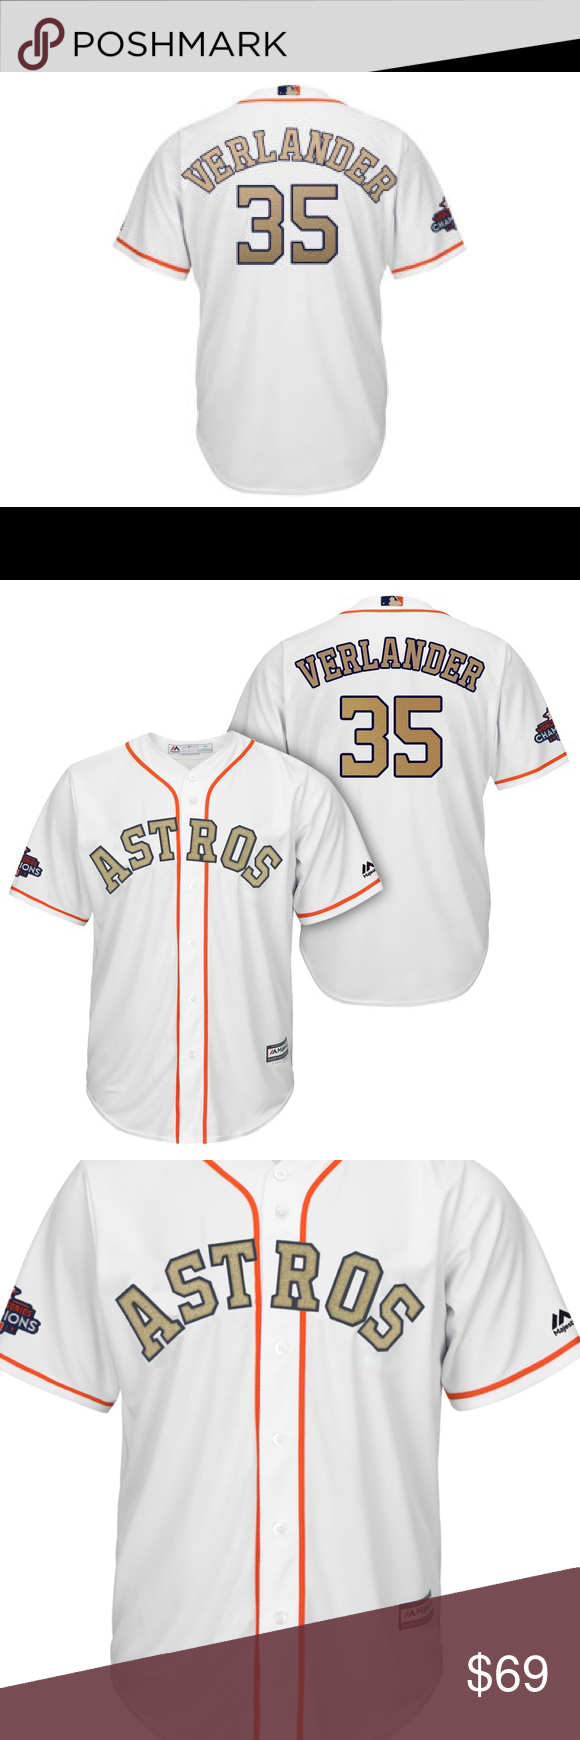 finest selection a183d 3eccc COMING SOON* Verlander Astros Gold Jerseys! COMING SOON to ...